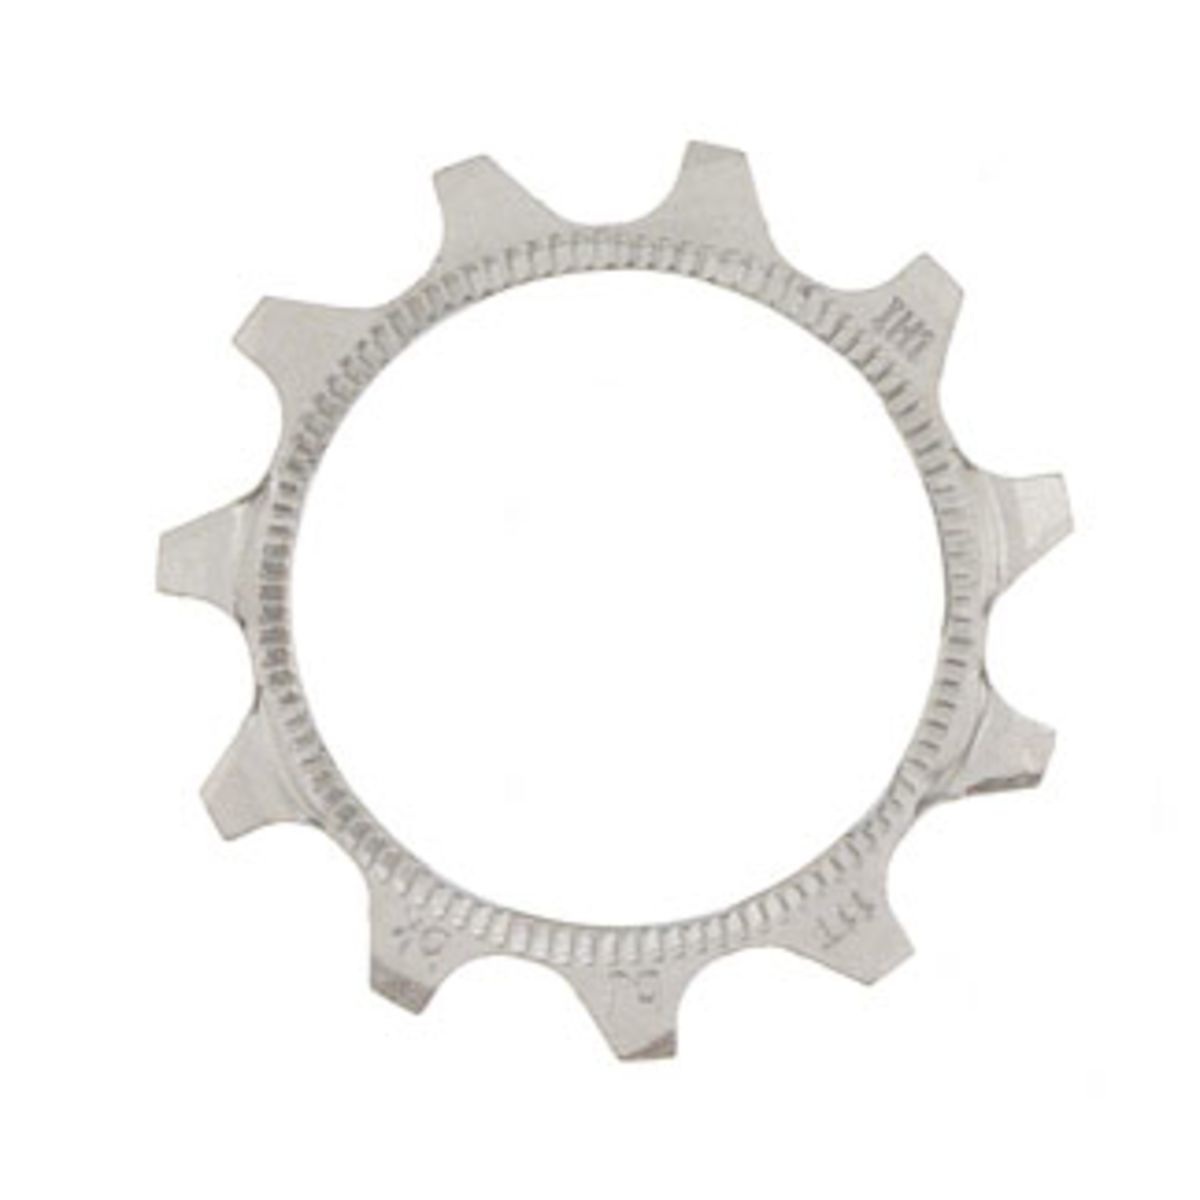 XT CS-M771 10 Speed 11 Tooth Sprocket for 11-34/11-36